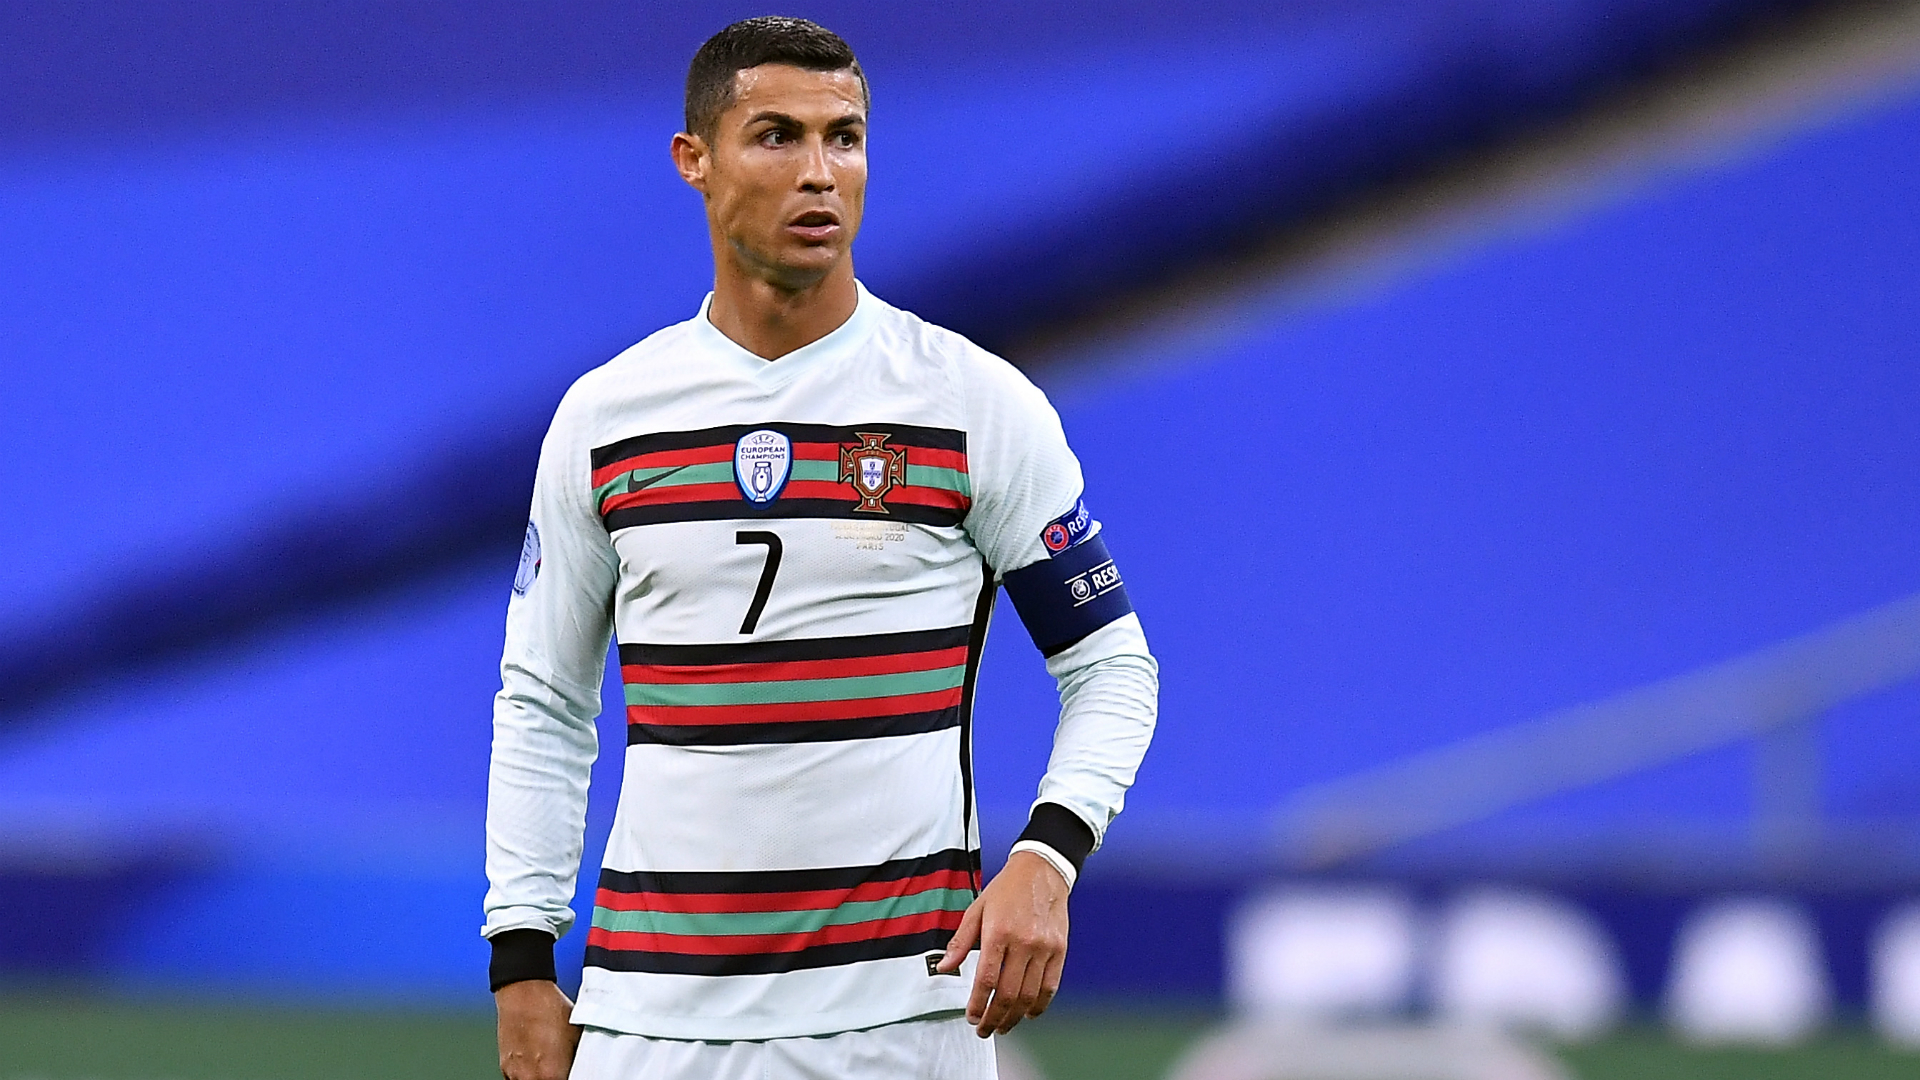 Cristiano Ronaldo can't be stopped, warns Kulusevski ahead of Portugal-Sweden clash